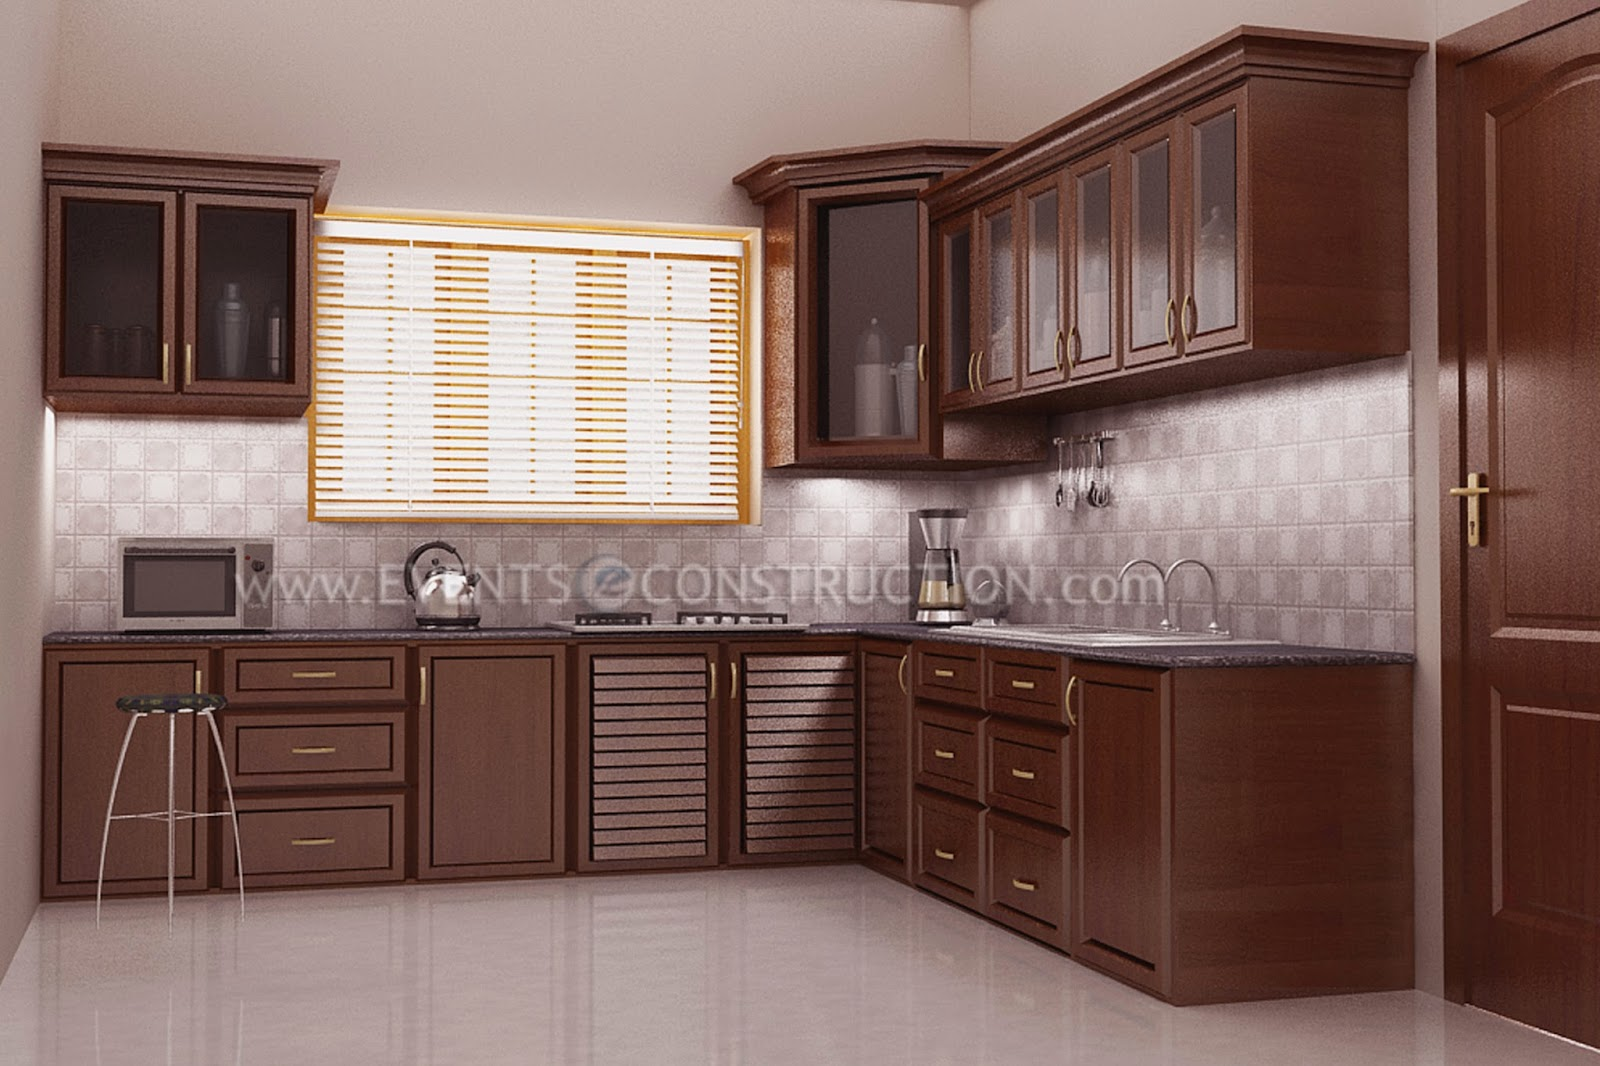 Evens construction pvt ltd kitchen design with wooden for Interior designs cupboards